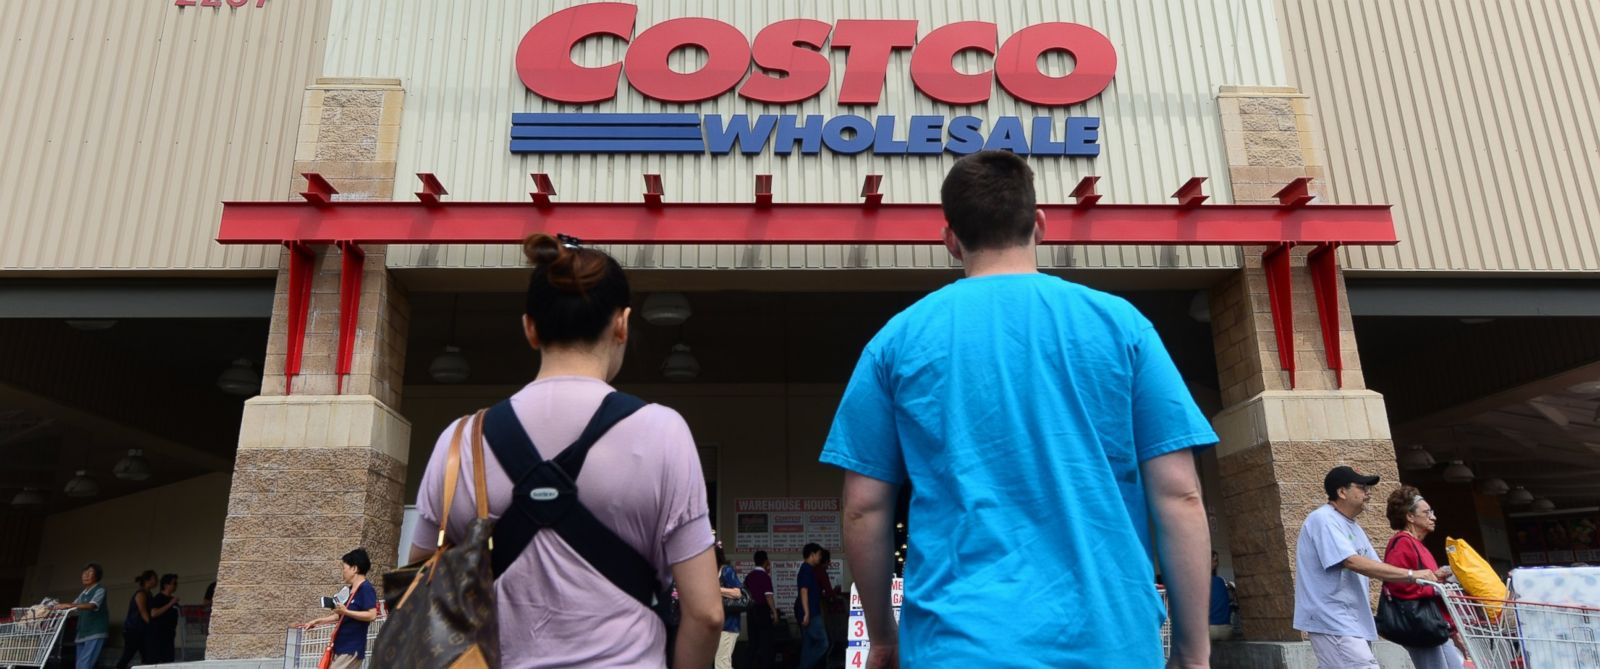 PHOTO: A couple make their way toward the entrance of a Costco store in Alhambra, Calif. on June 2, 2013.